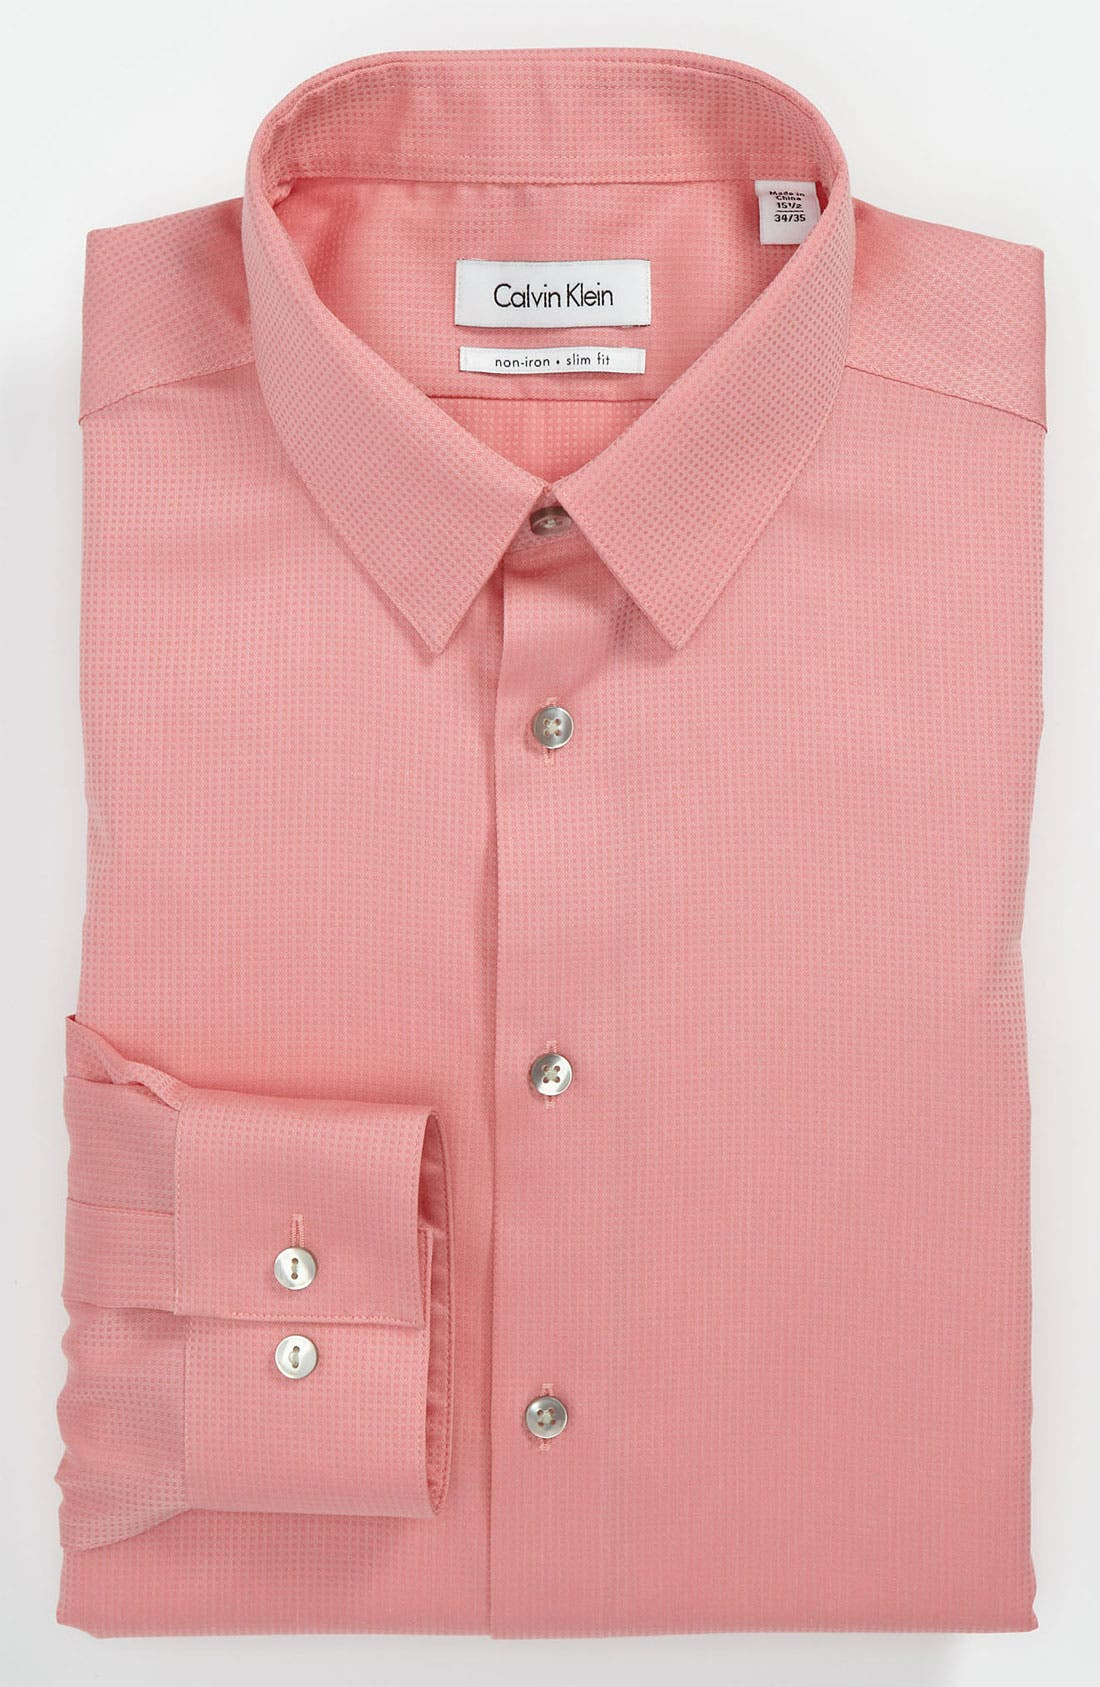 Main Image - Calvin Klein 'Miami Check' Slim Fit Non-Iron Dress Shirt